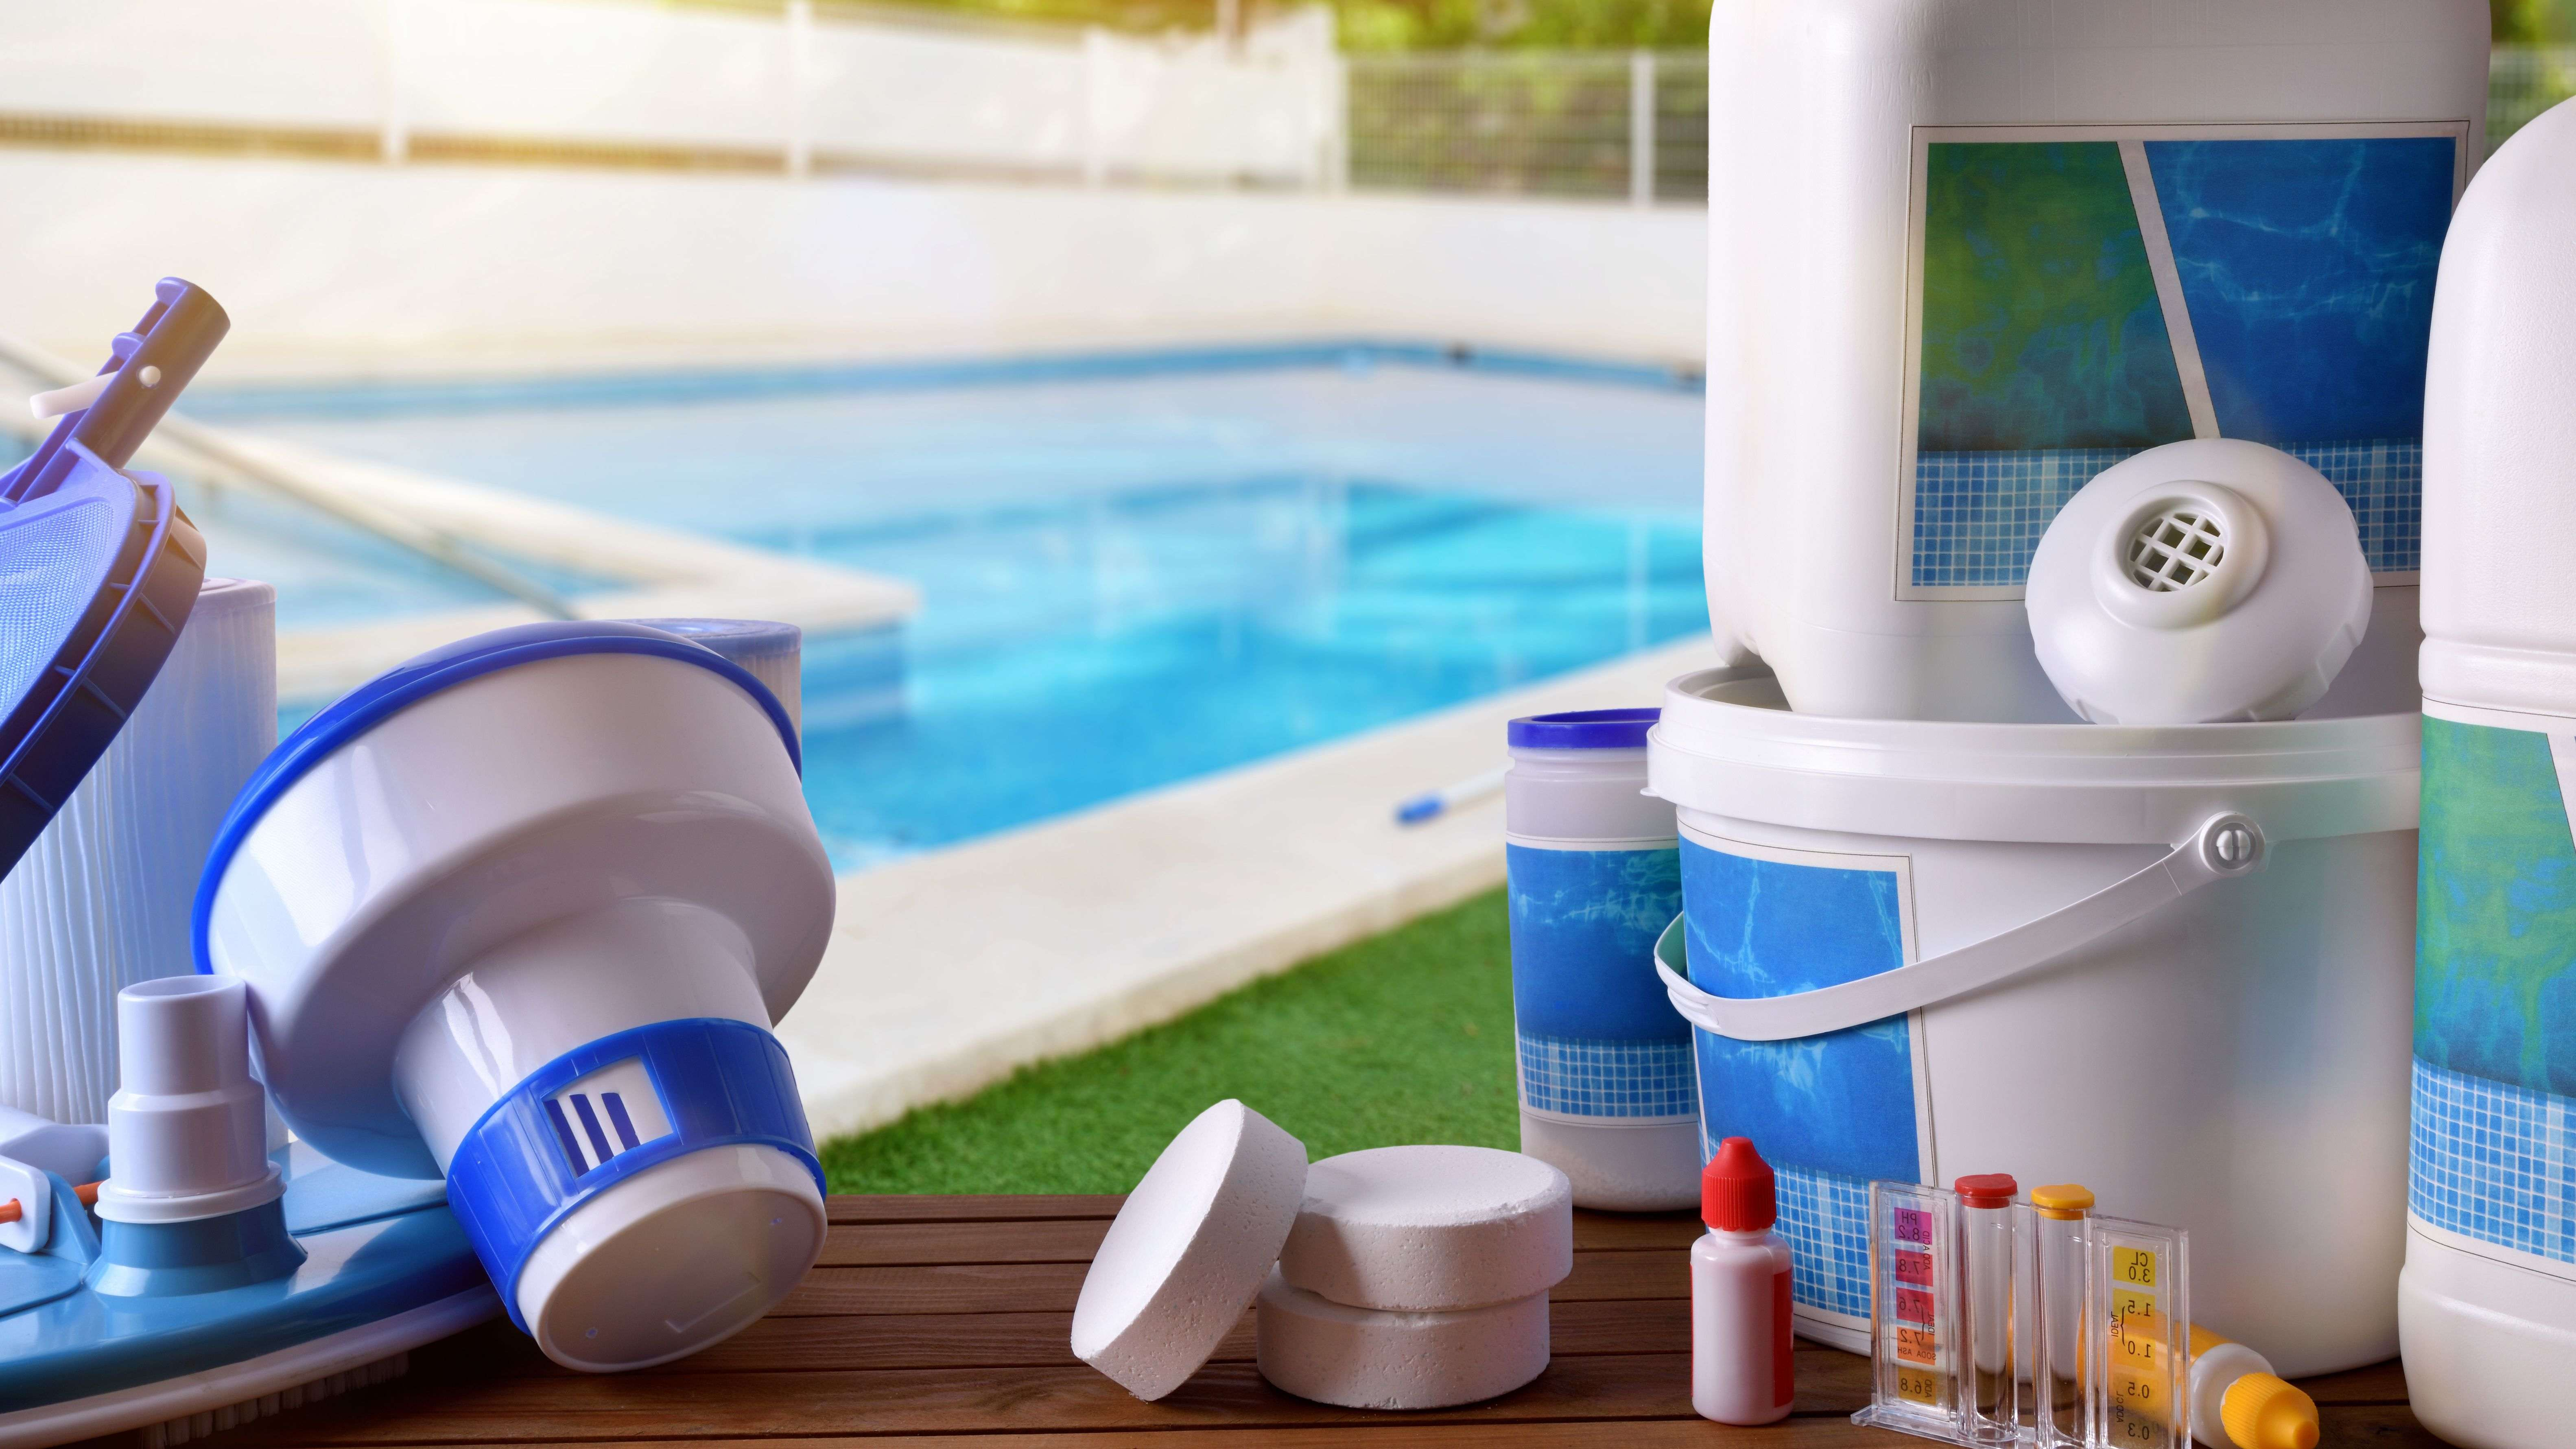 Pool maintenance products buying guide